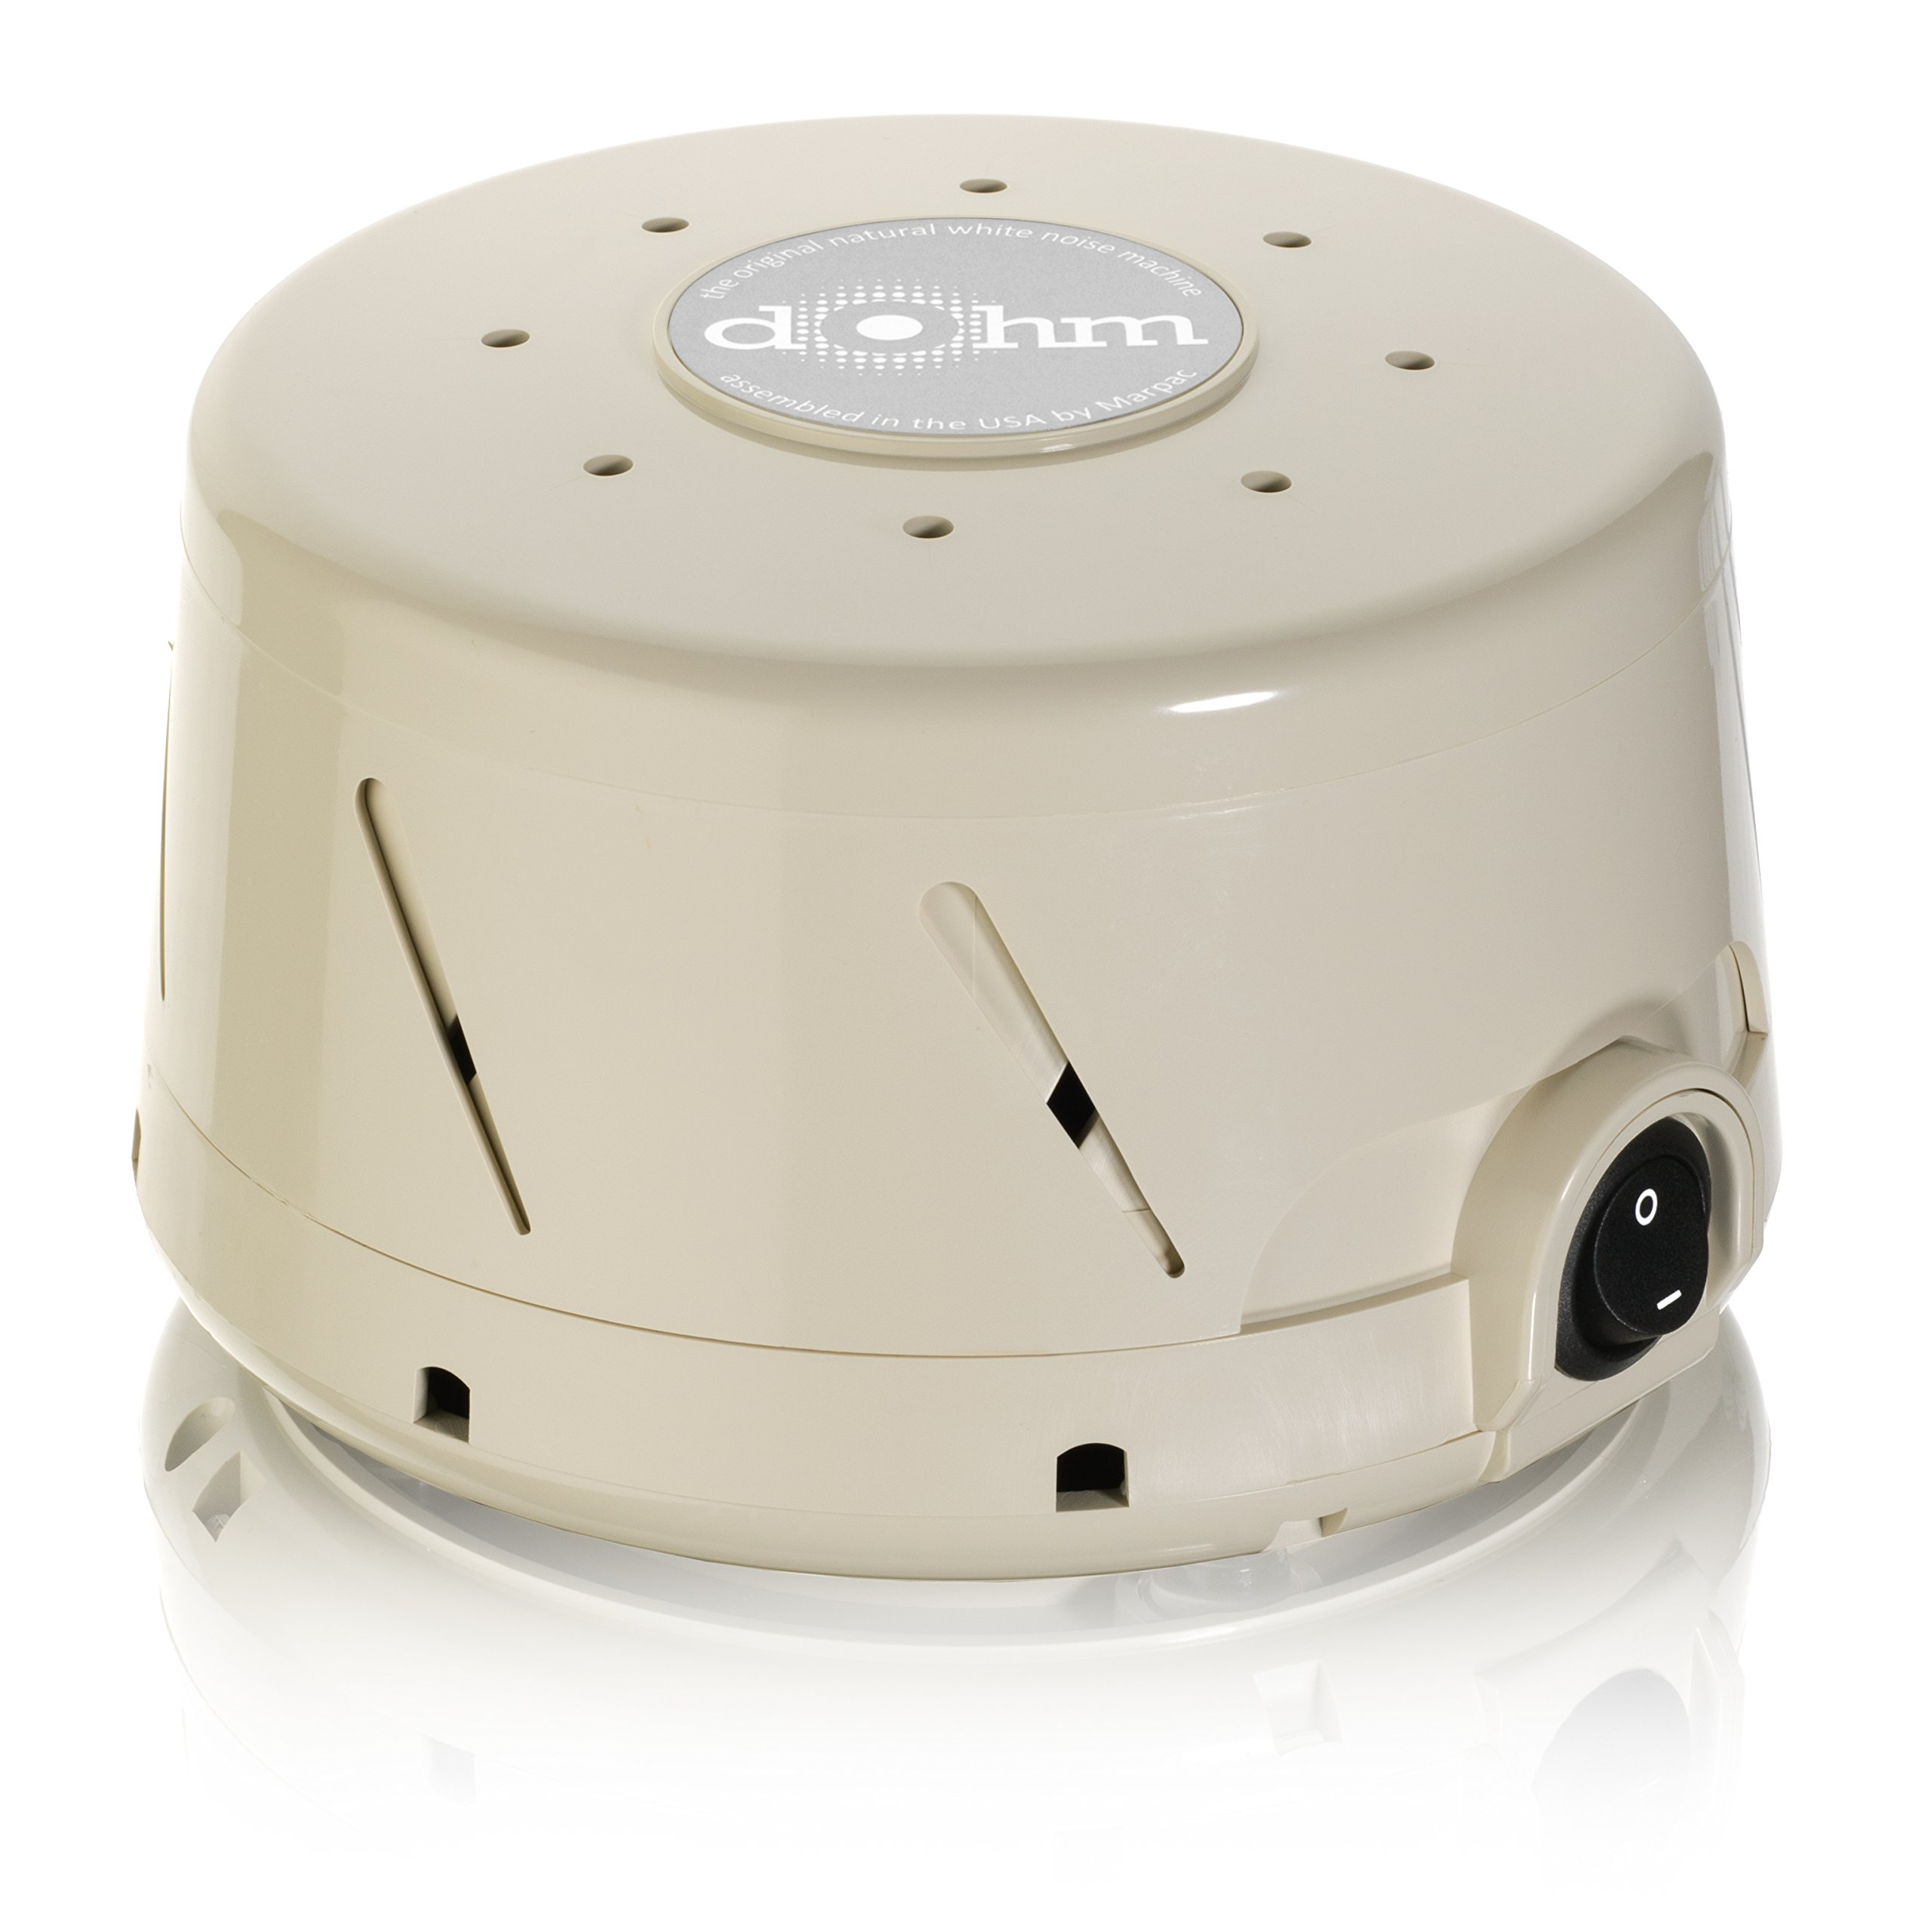 Marpac Dohm-SS Single Speed All-Natural White Noise Sound Machine, Actual Fan Inside, Tan by Marpac